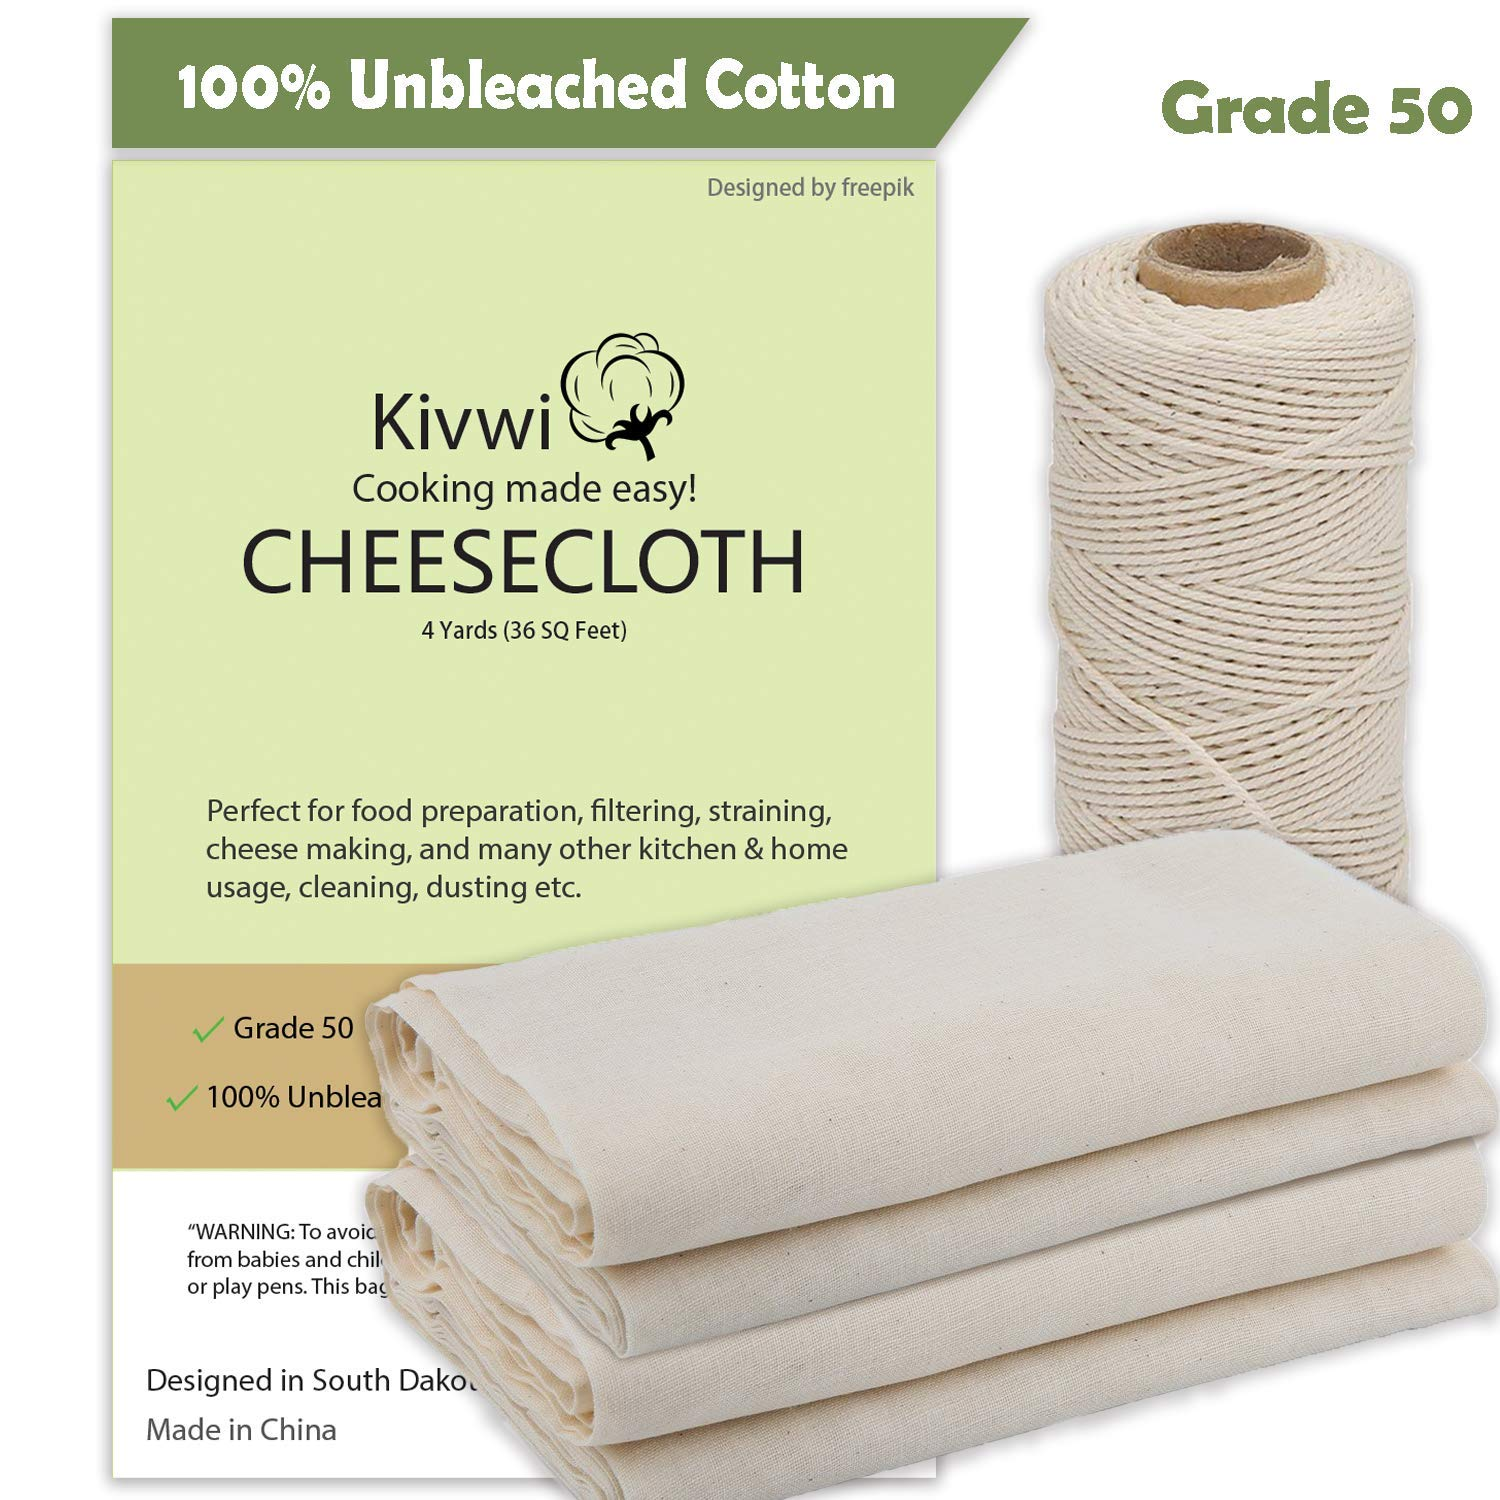 Cheesecloth, Grade 50, 36 Sq Feet, Reusable, 100% Unbleached Cotton Fabric, Ultra Fine Cheesecloth for Cooking - Nut Milk Bag, Strainer, Filter (Grade 50-4Yards) (Cotton, Grade 50 with cooking twine)